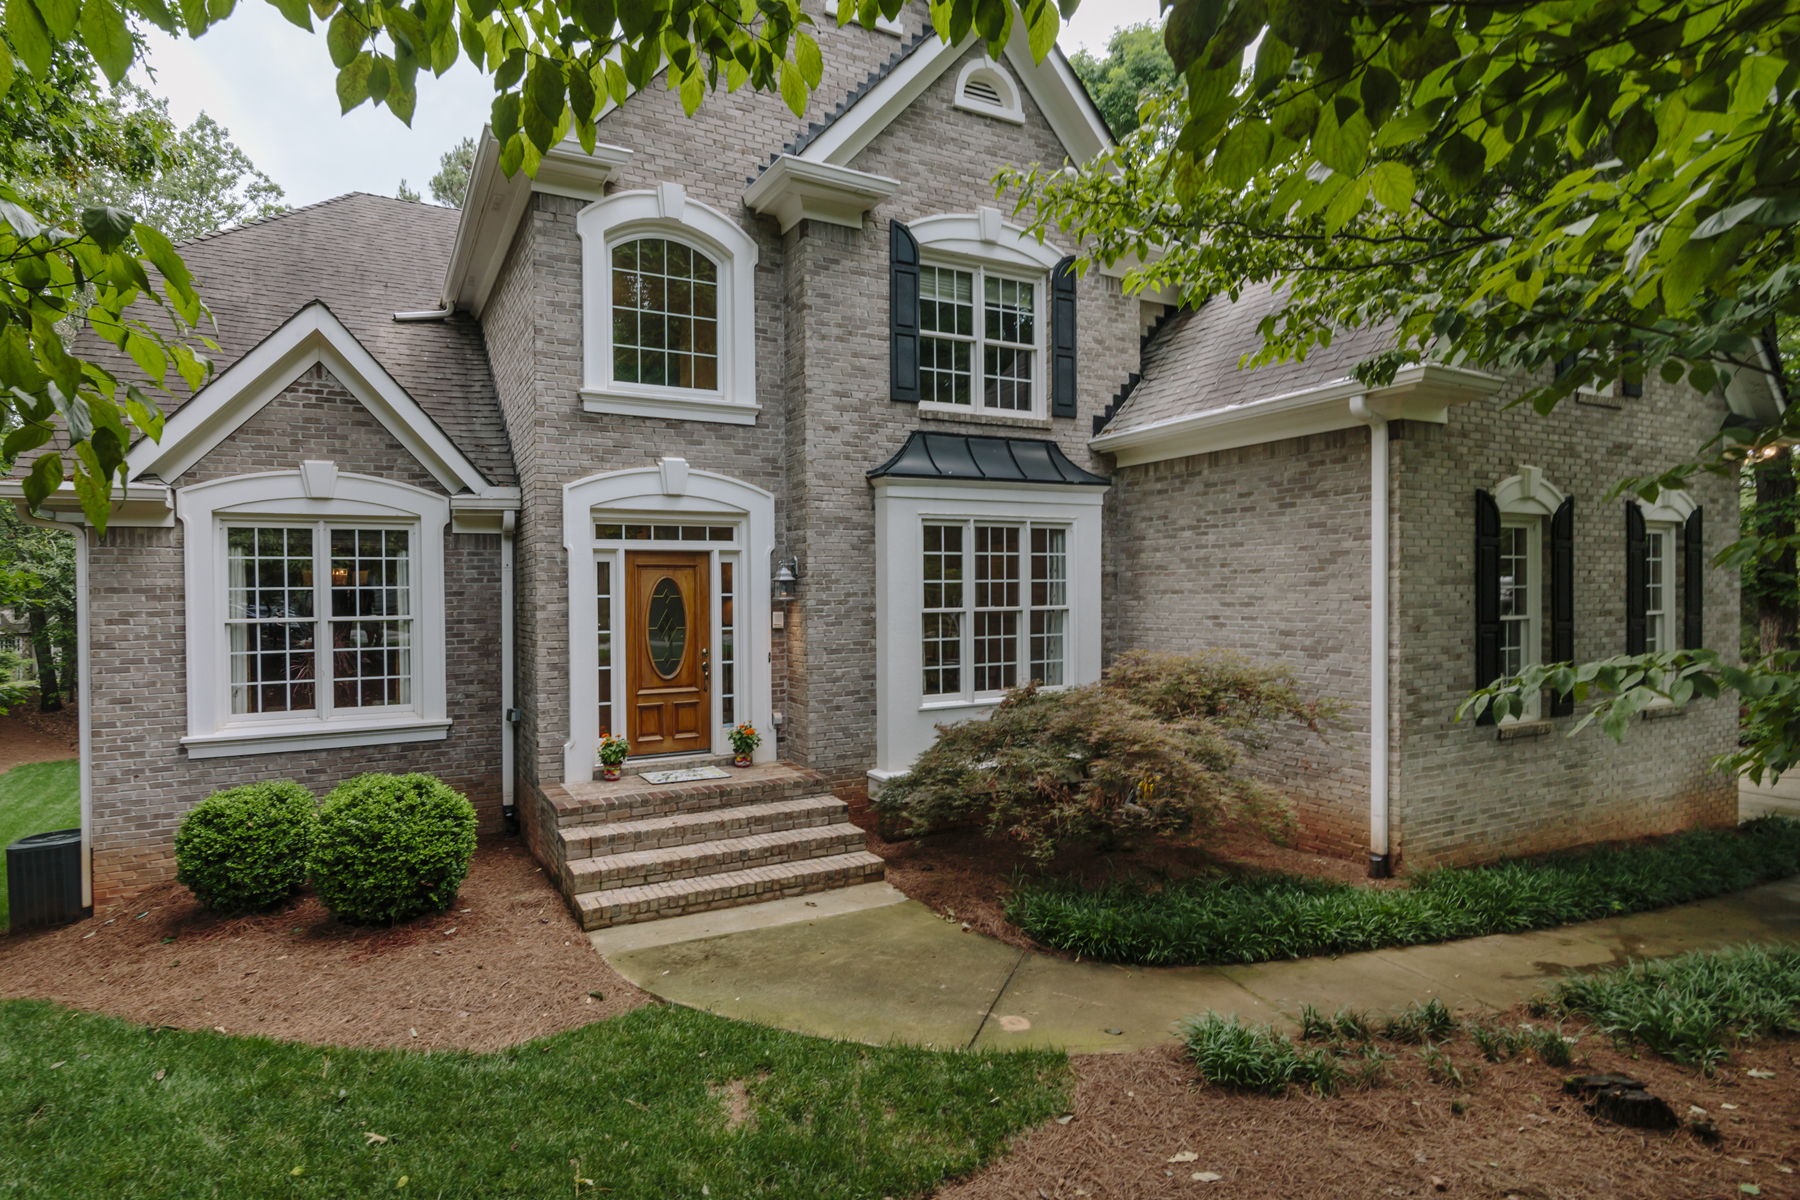 Single Family Home for Sale at Surprising Home In Sought After Community 340 N Peak Drive Alpharetta, Georgia 30022 United States